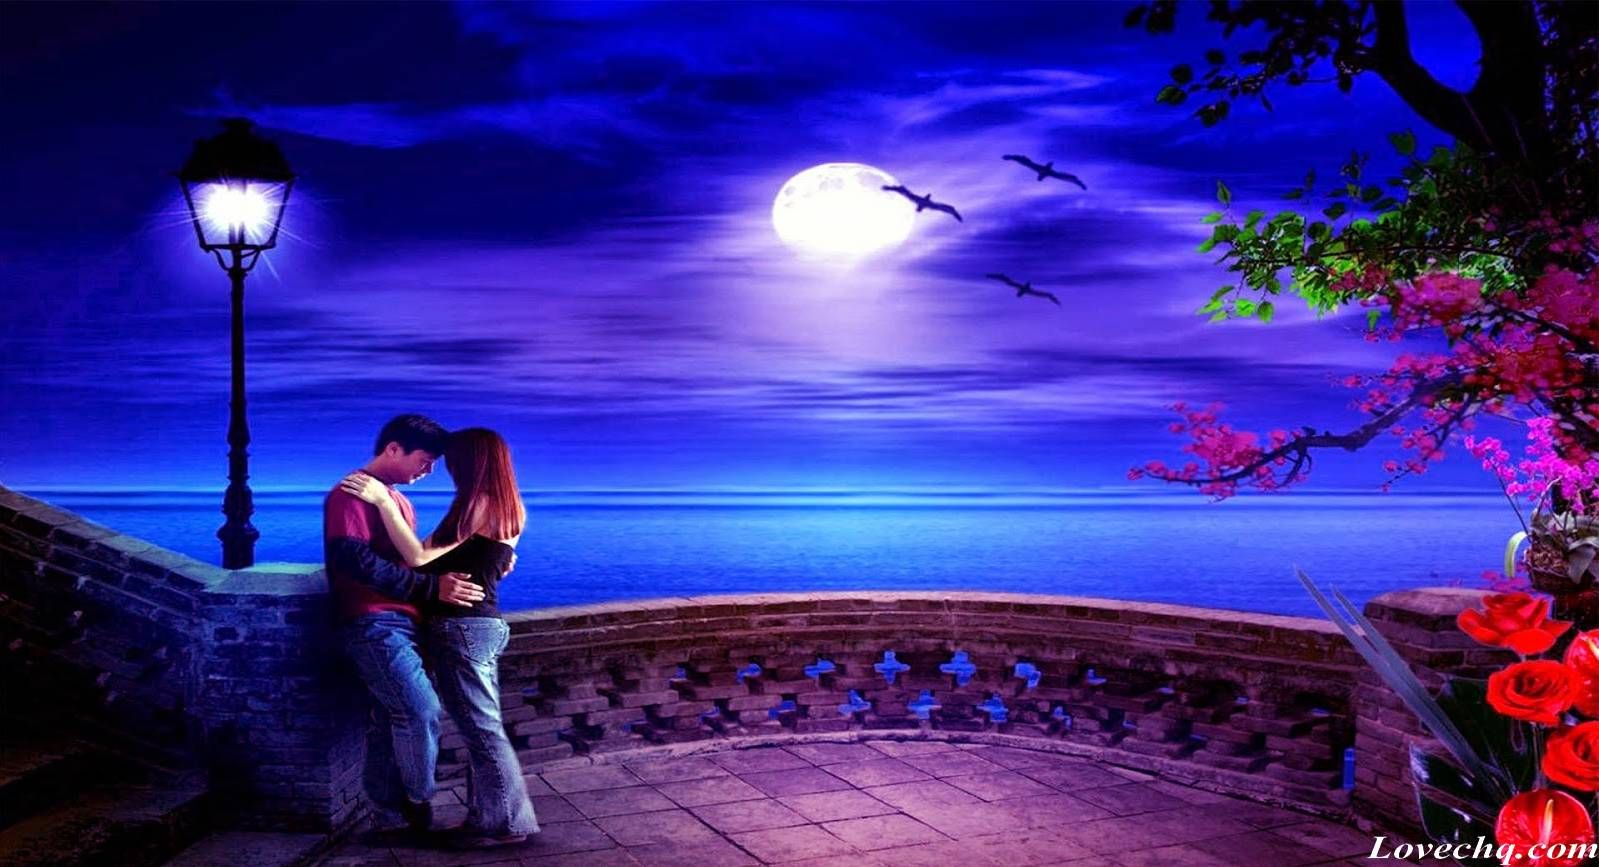 44 Nice Romantic Wallpaper Download Gratis Terbaru